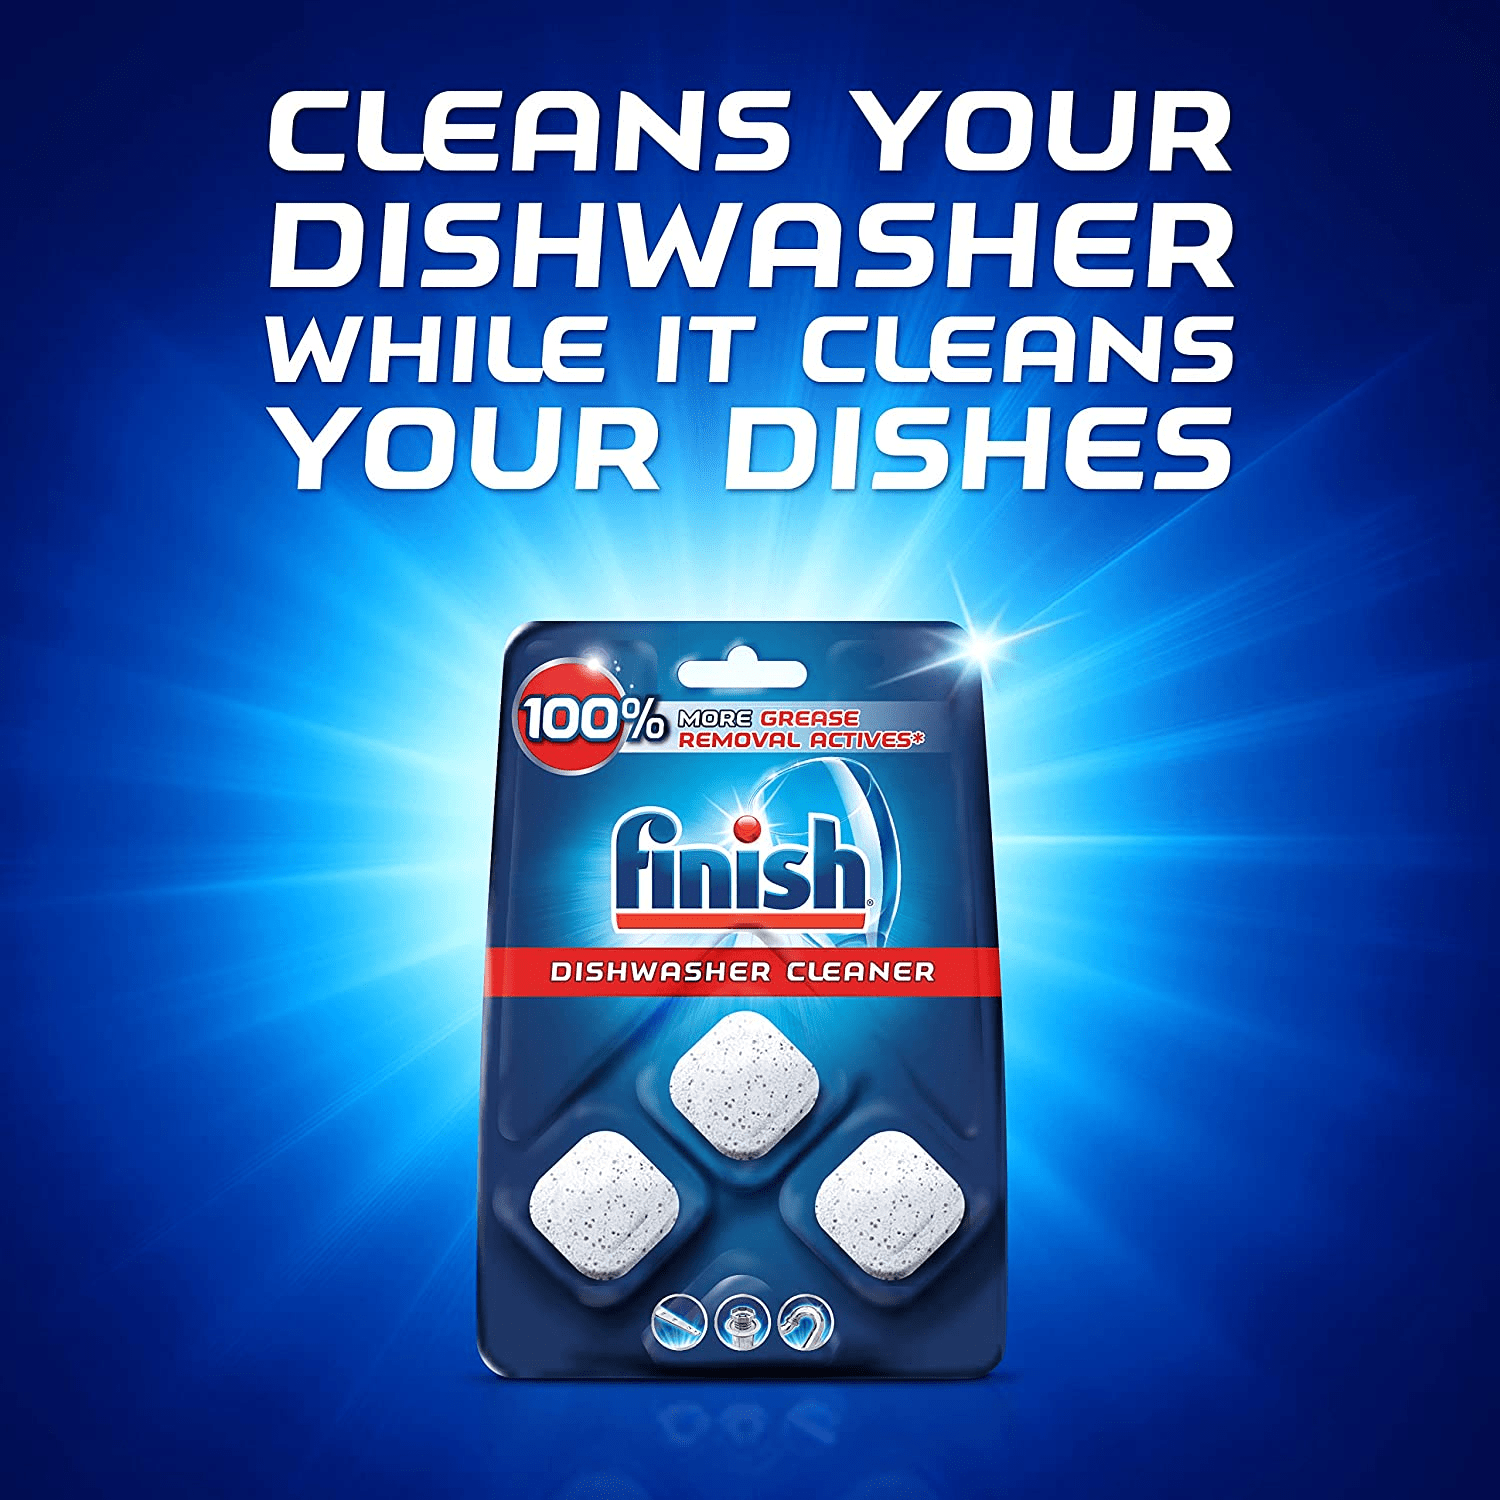 https://www.finish.co.uk/products/additives/in-wash-cleaner/finish-in-wash-cleaner/